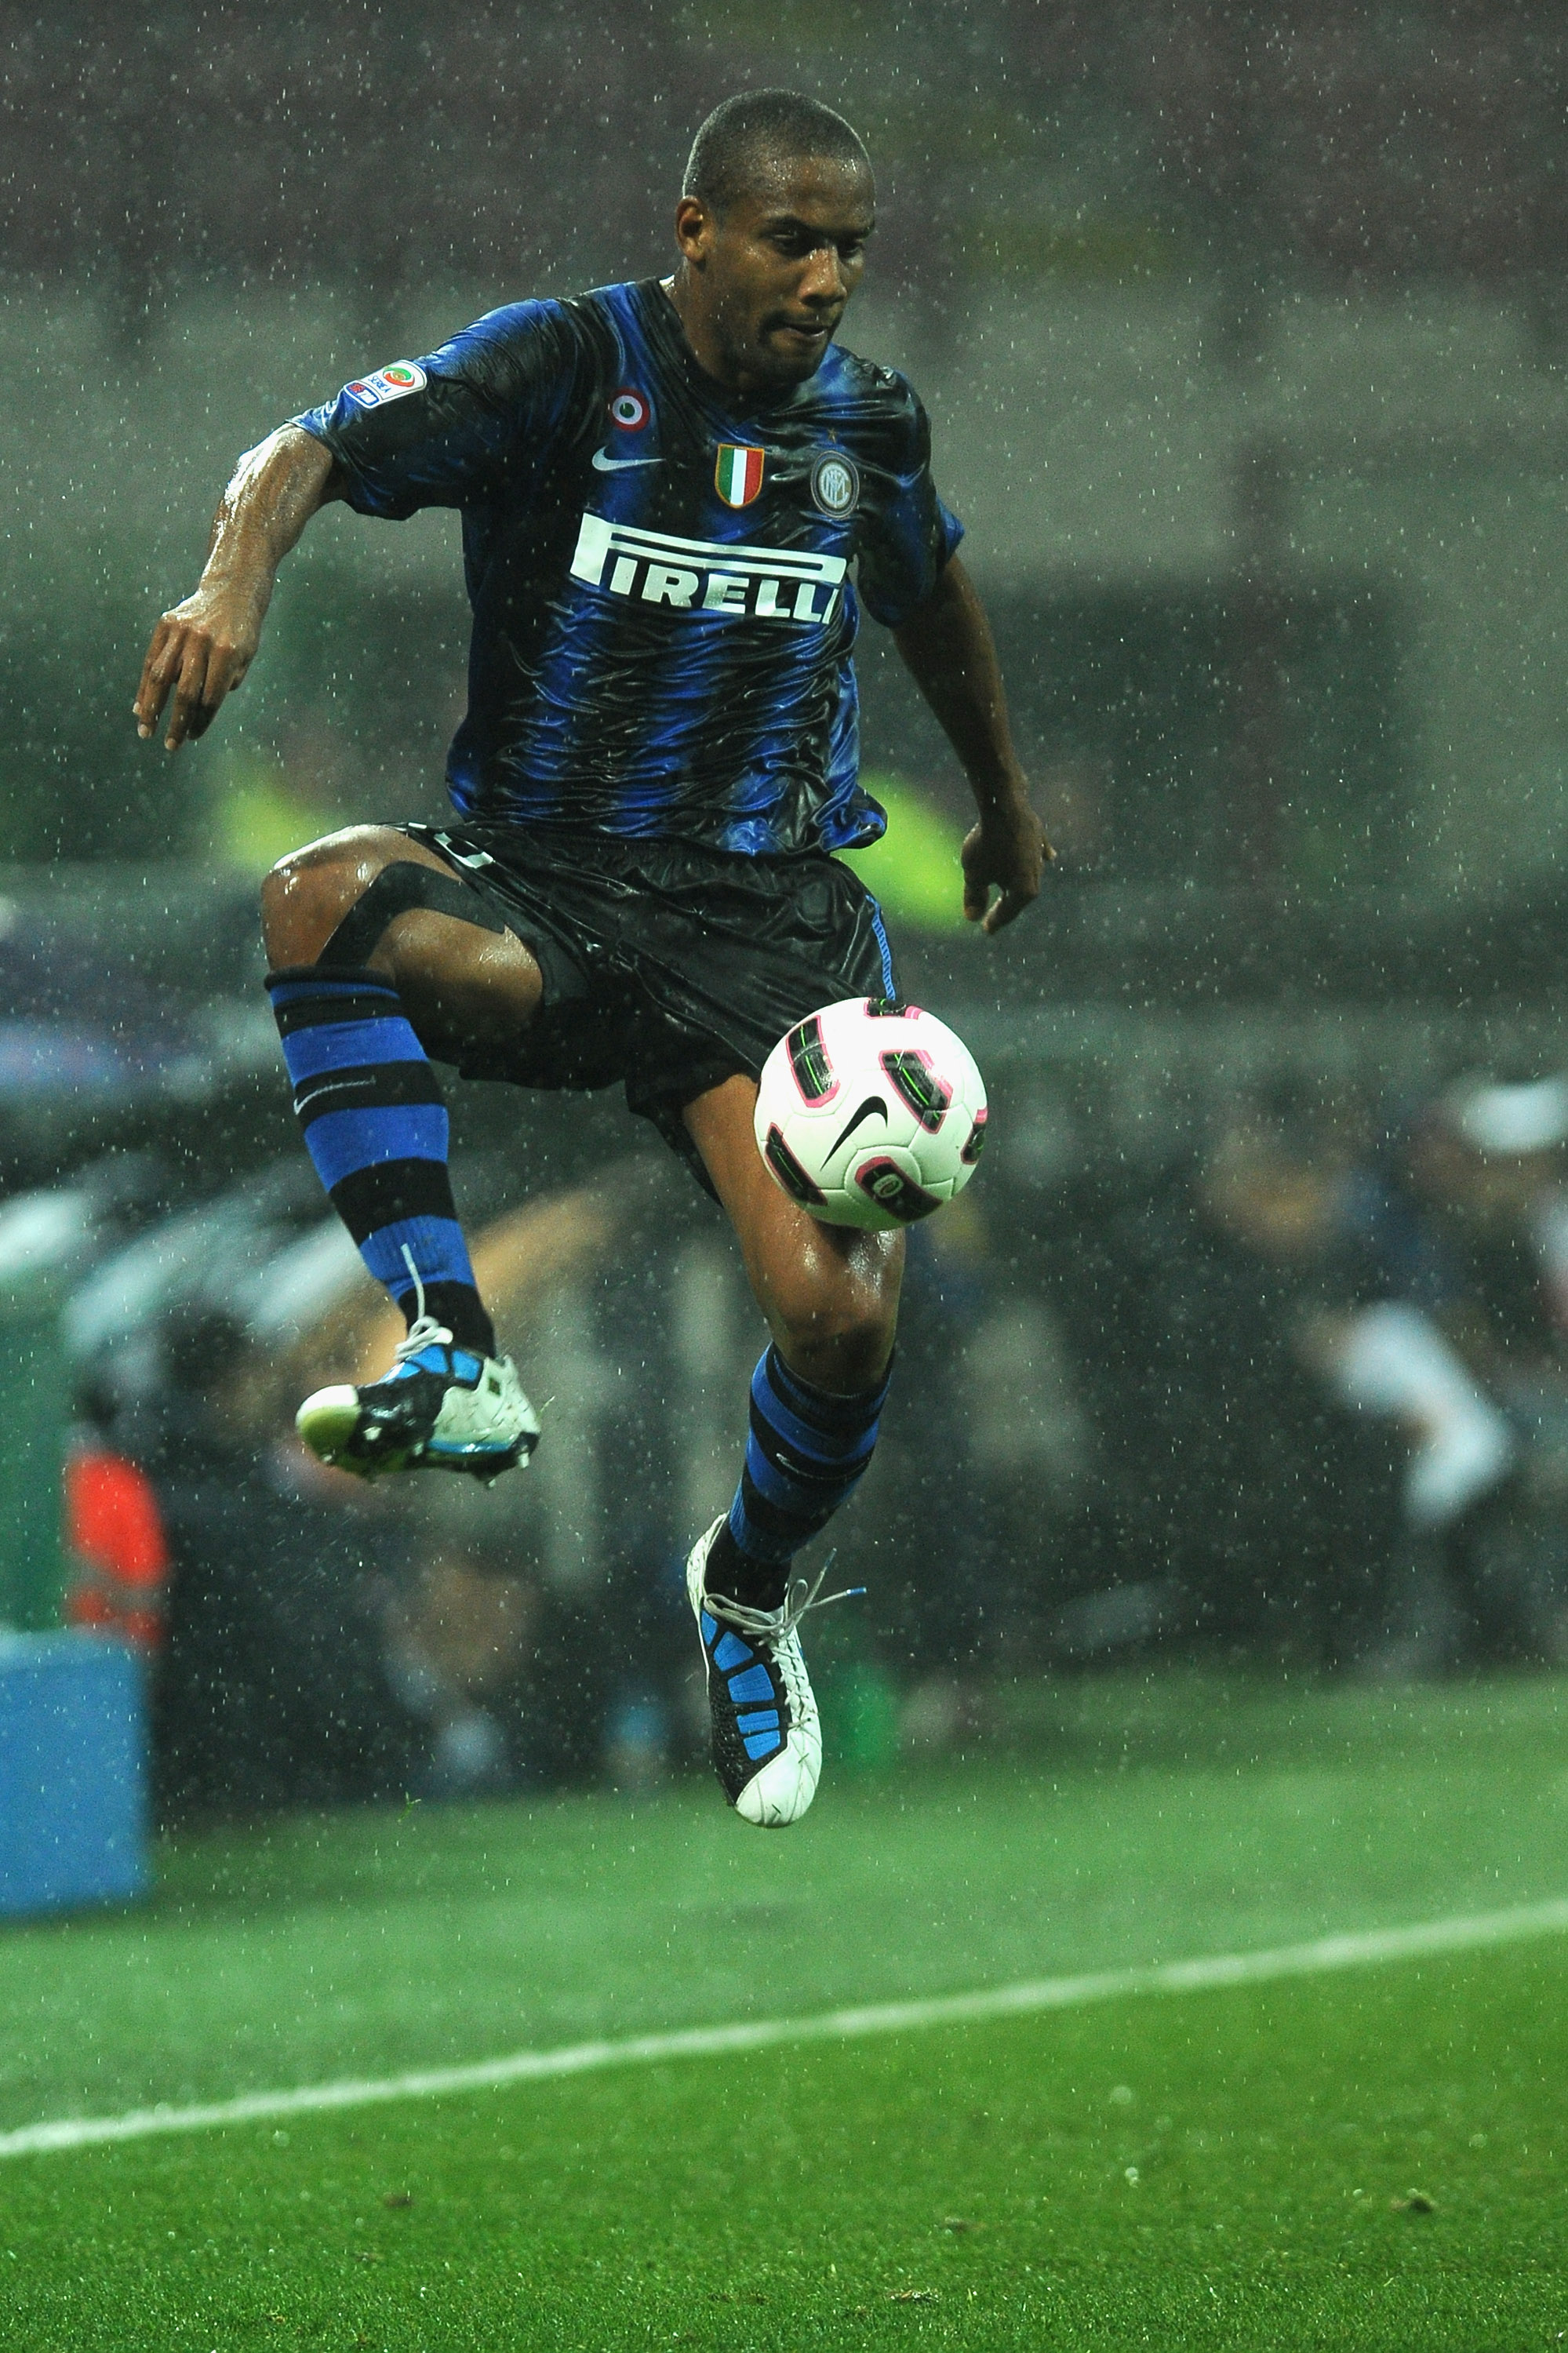 MILAN, ITALY - OCTOBER 24:  Douglas Maicon  of FC Internazionale Milano in action during the Serie A match between FC Internazionale Milano and UC Sampdoria at Stadio Giuseppe Meazza on October 24, 2010 in Milan, Italy.  (Photo by Valerio Pennicino/Getty